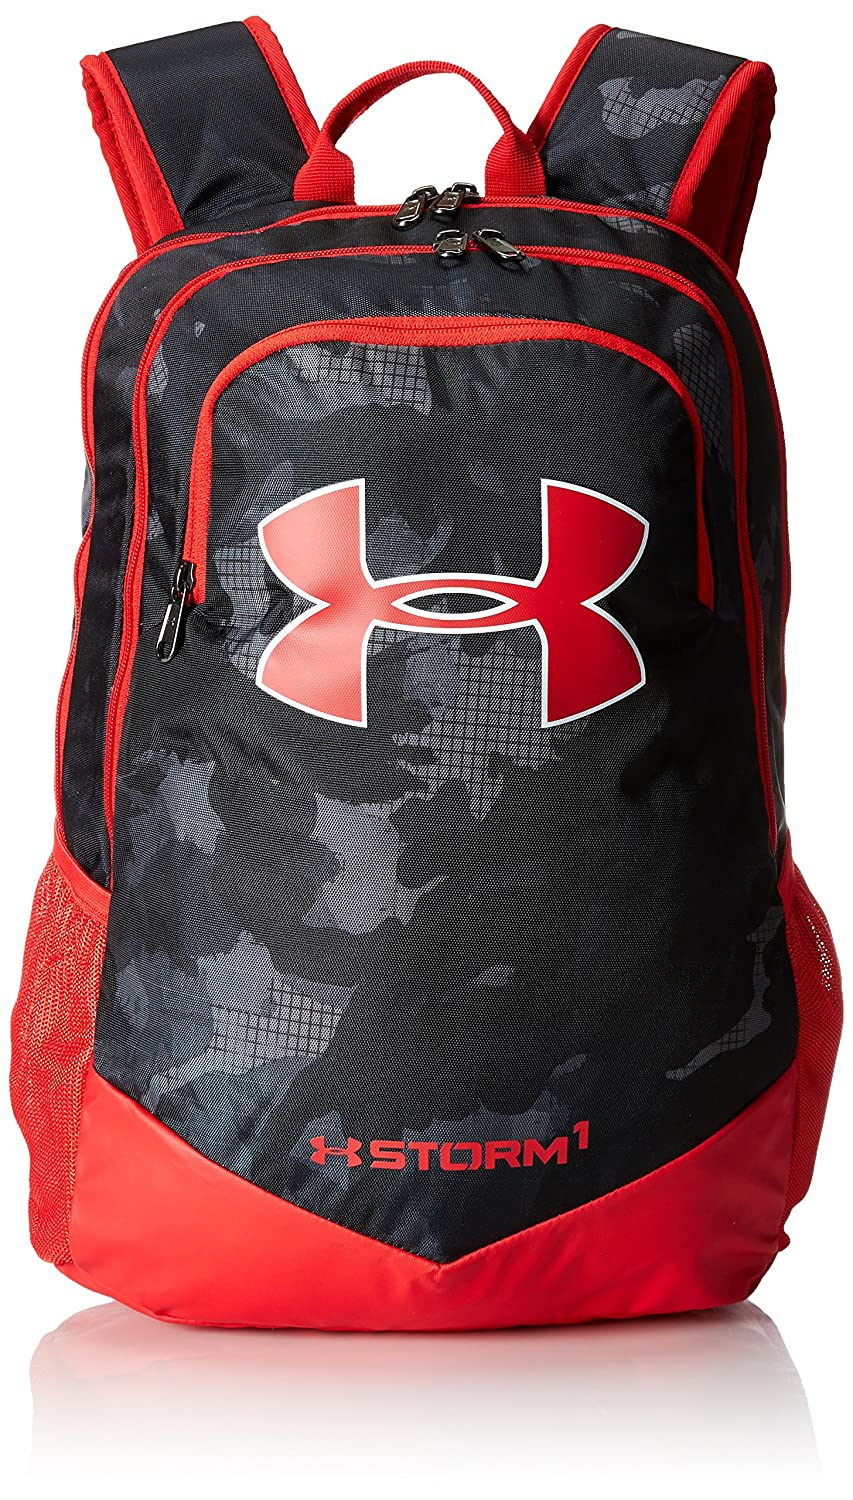 a992225dab PRIME DAY DEAL  Amazon – Under Armour Boys  Storm Scrimmage Backpack ...